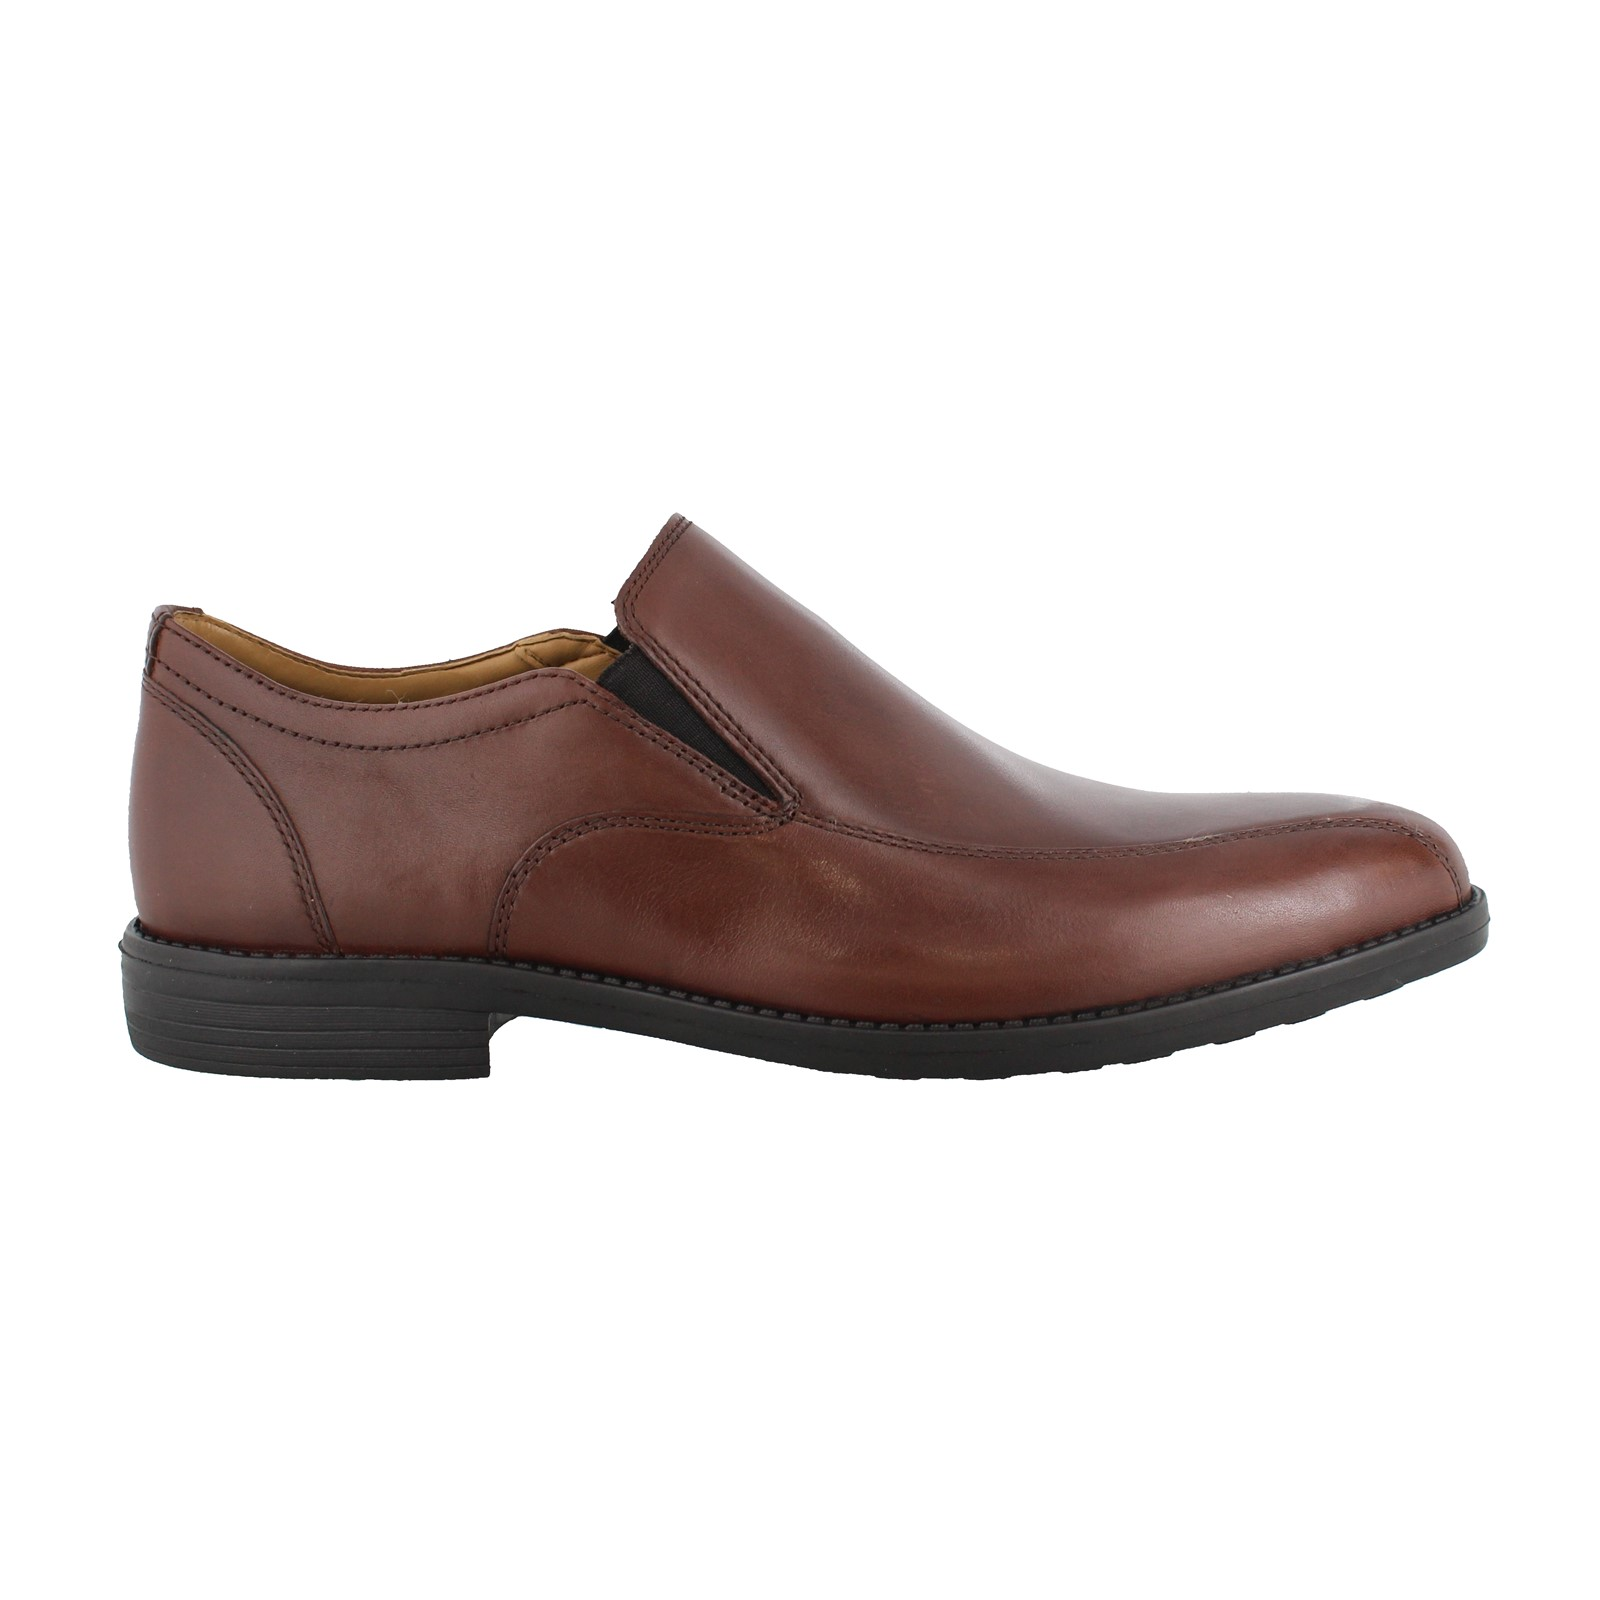 Men's Bostonian, Birkett Step Slip on Shoes